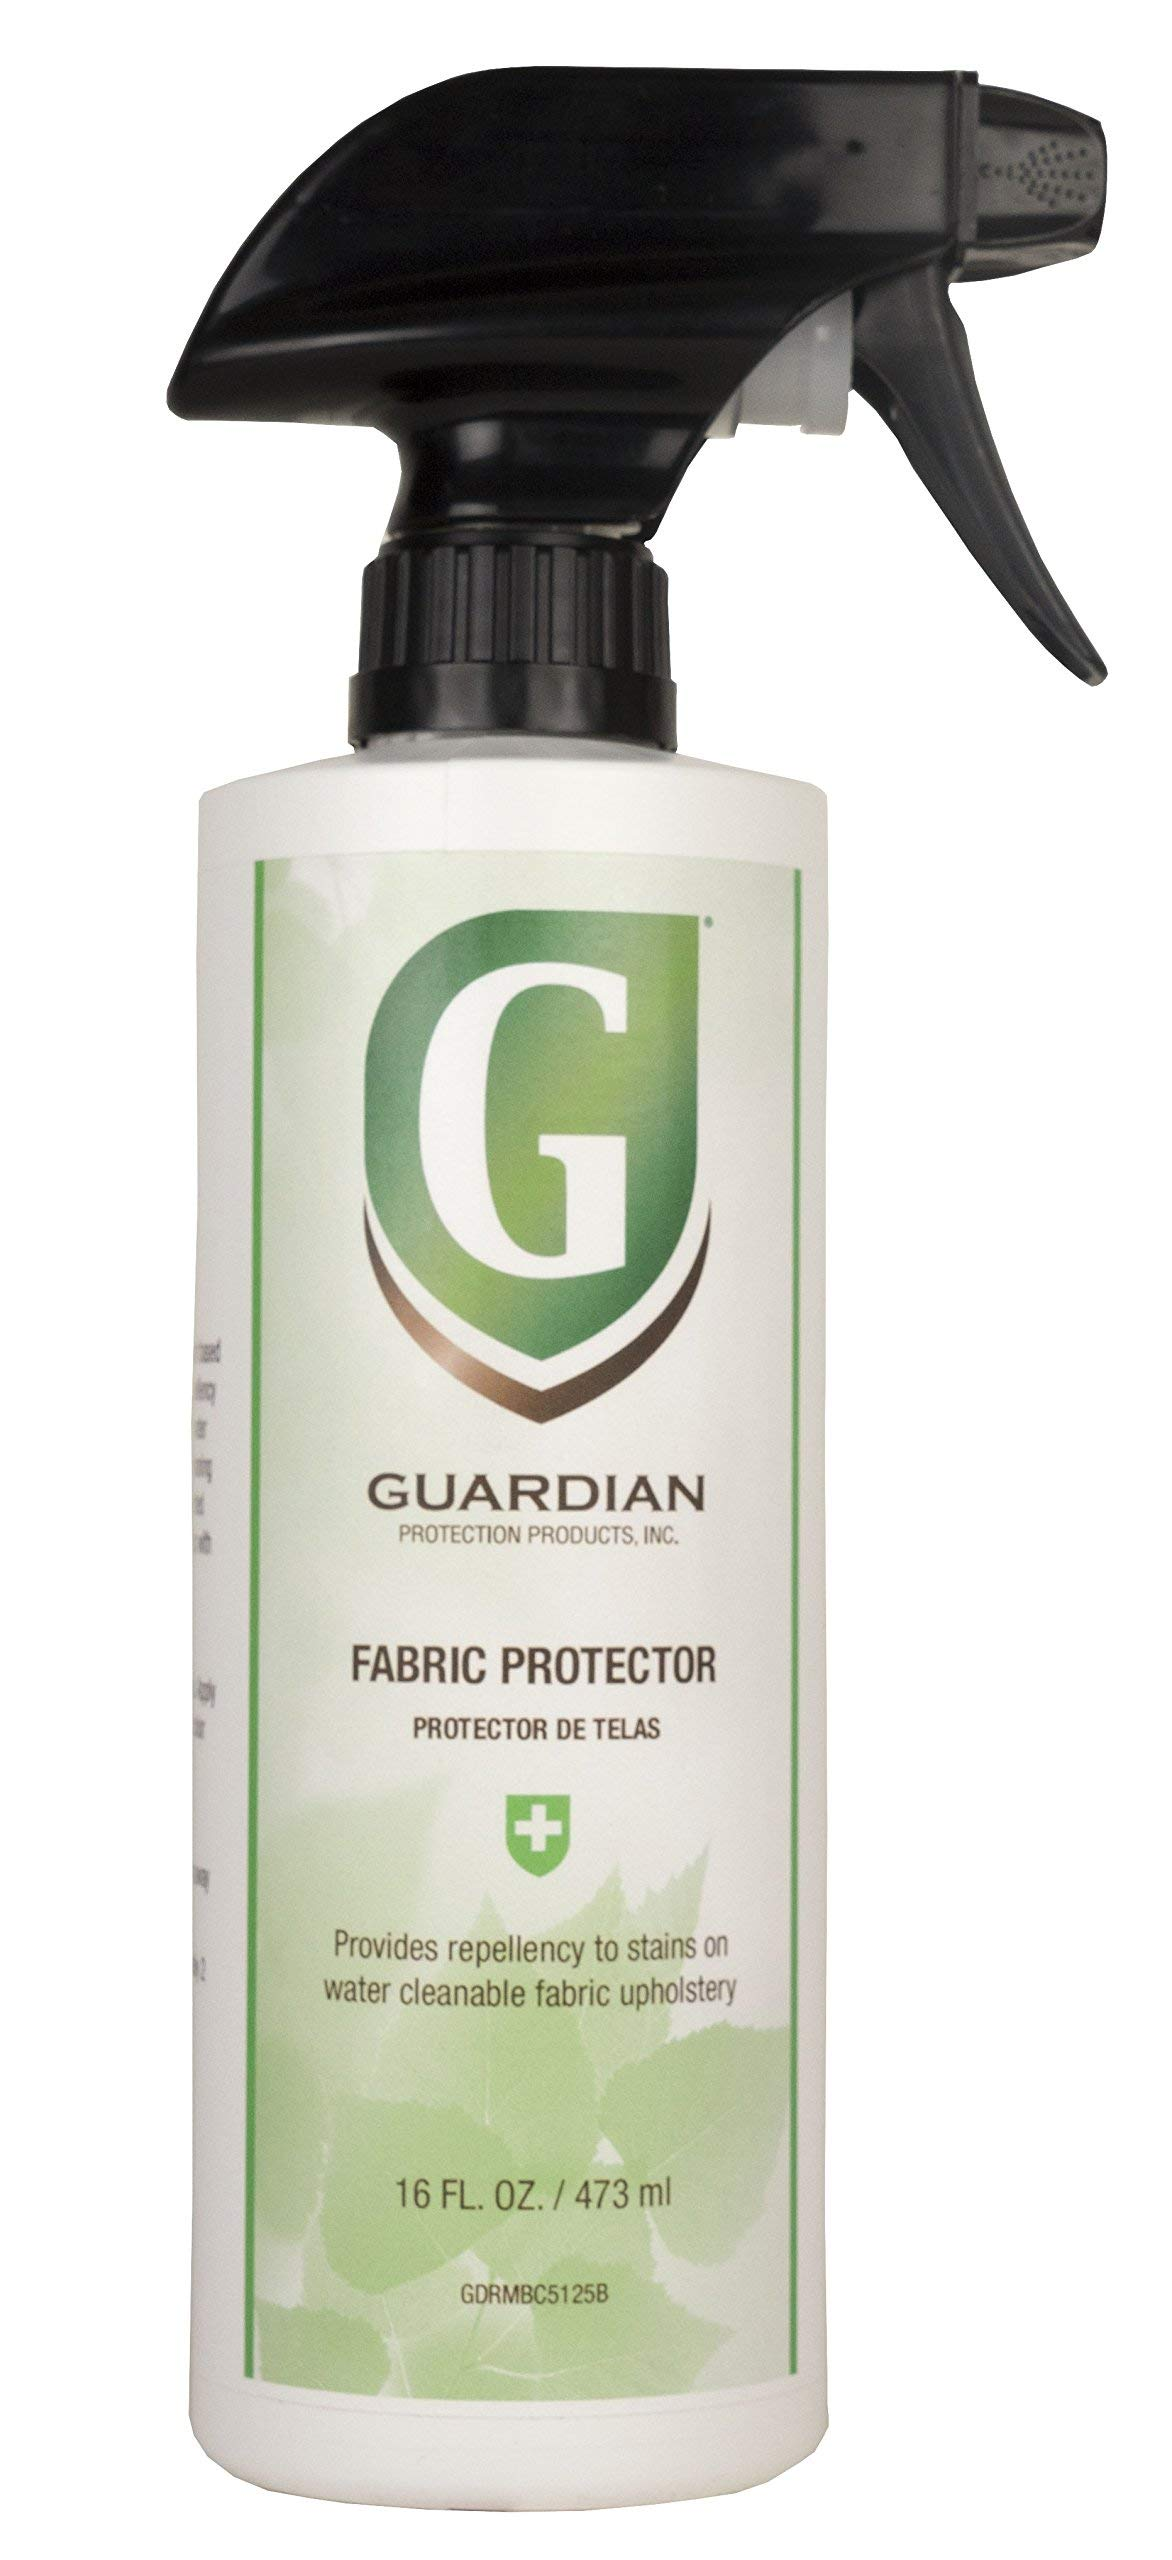 Guardian Fabric Protector - 16 oz by Guardian